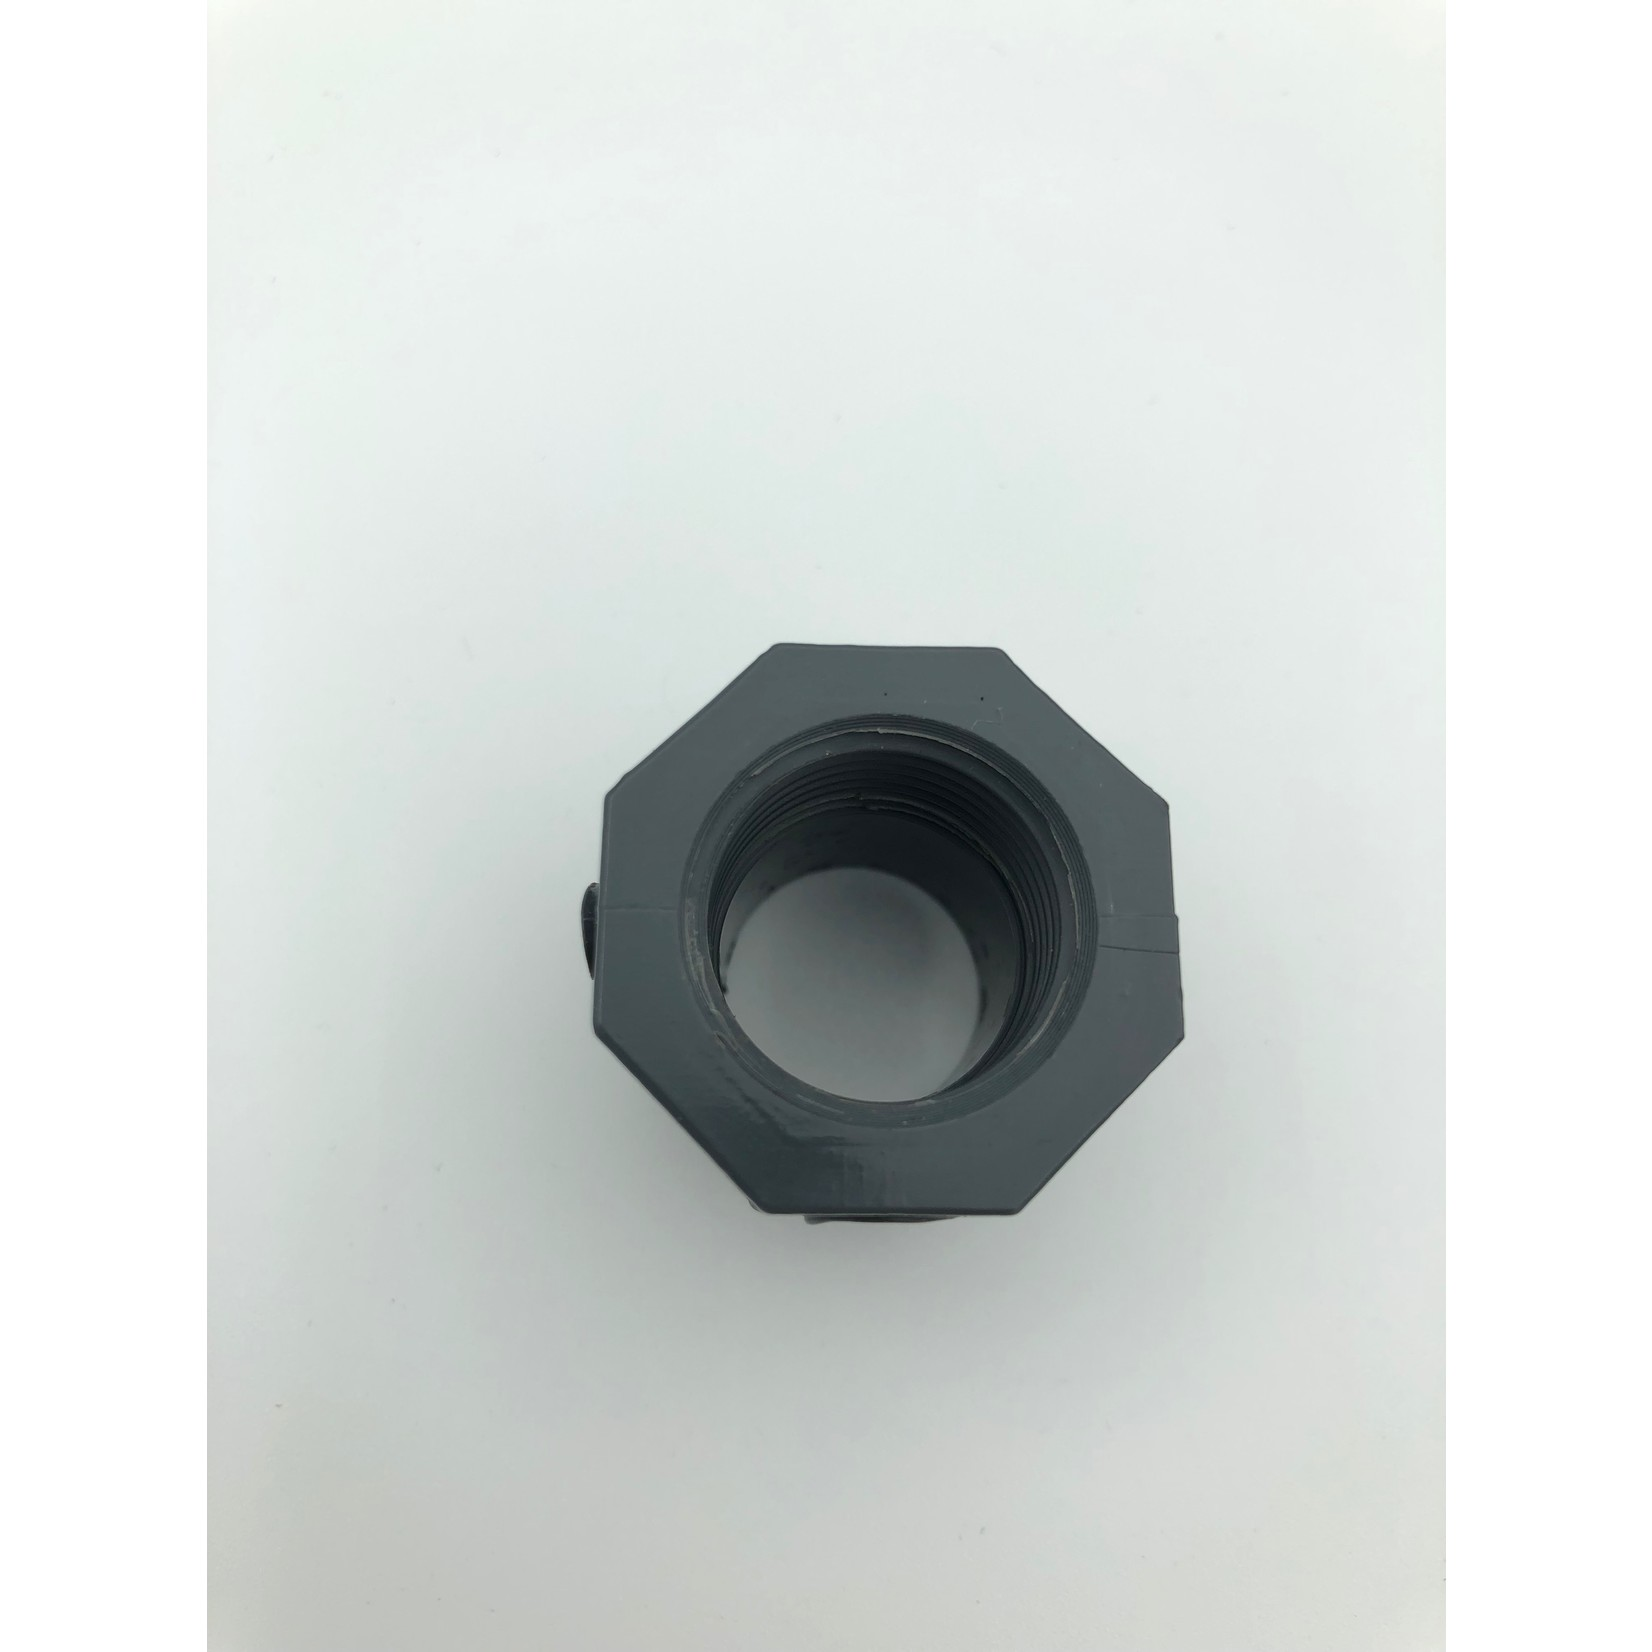 Robesol Adapter ring 1/4 inch to 1/2 inch